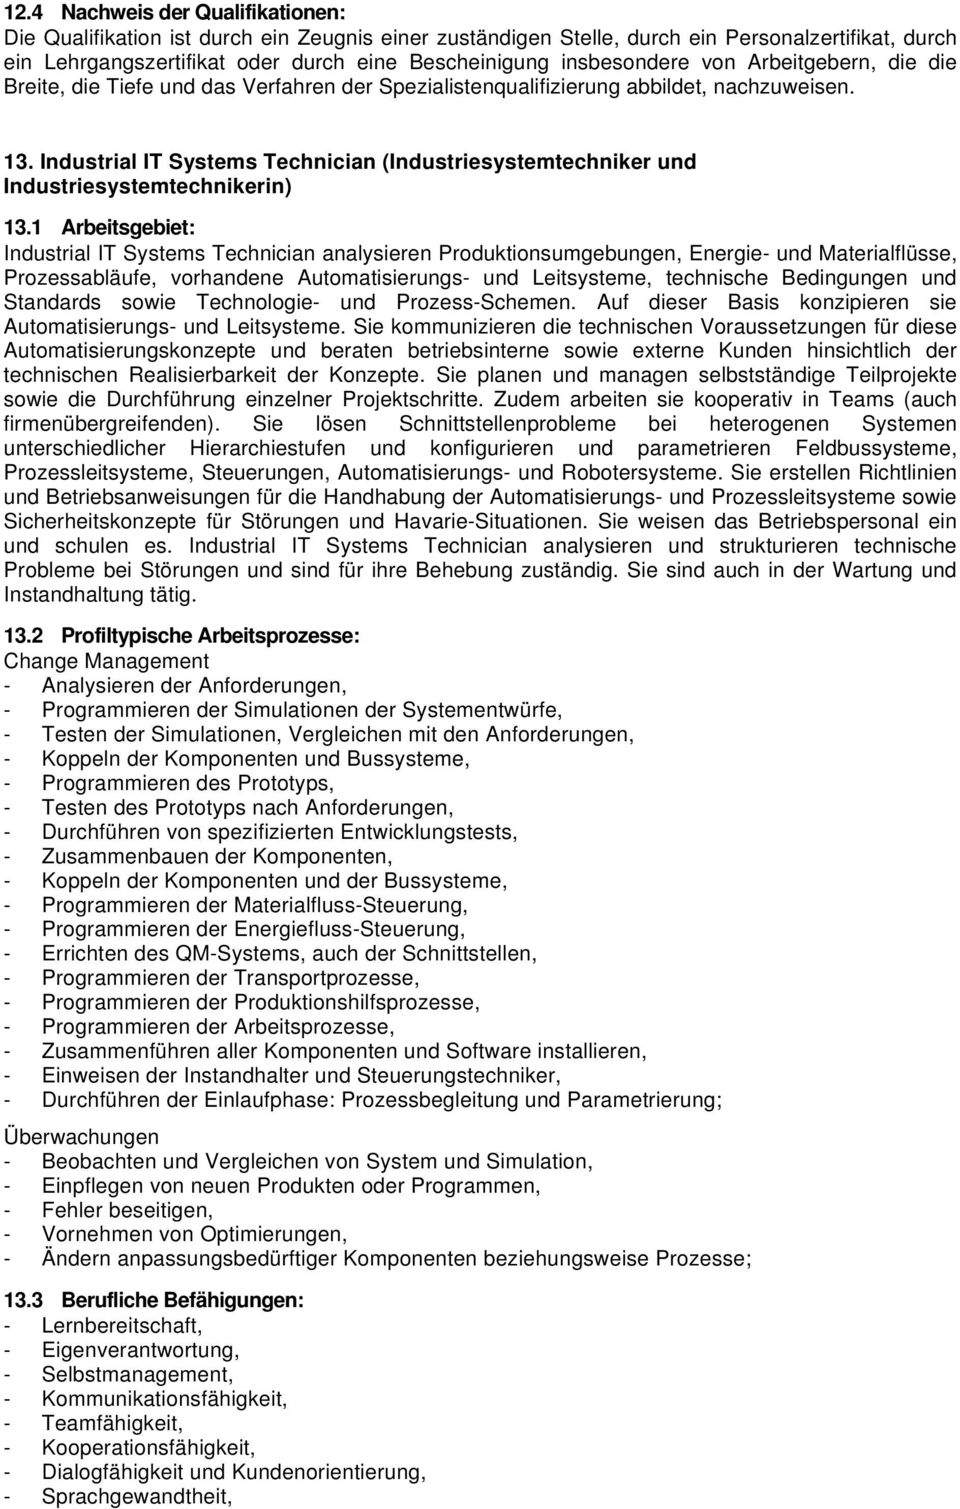 Industrial IT Systems Technician (Industriesystemtechniker und Industriesystemtechnikerin) 13.